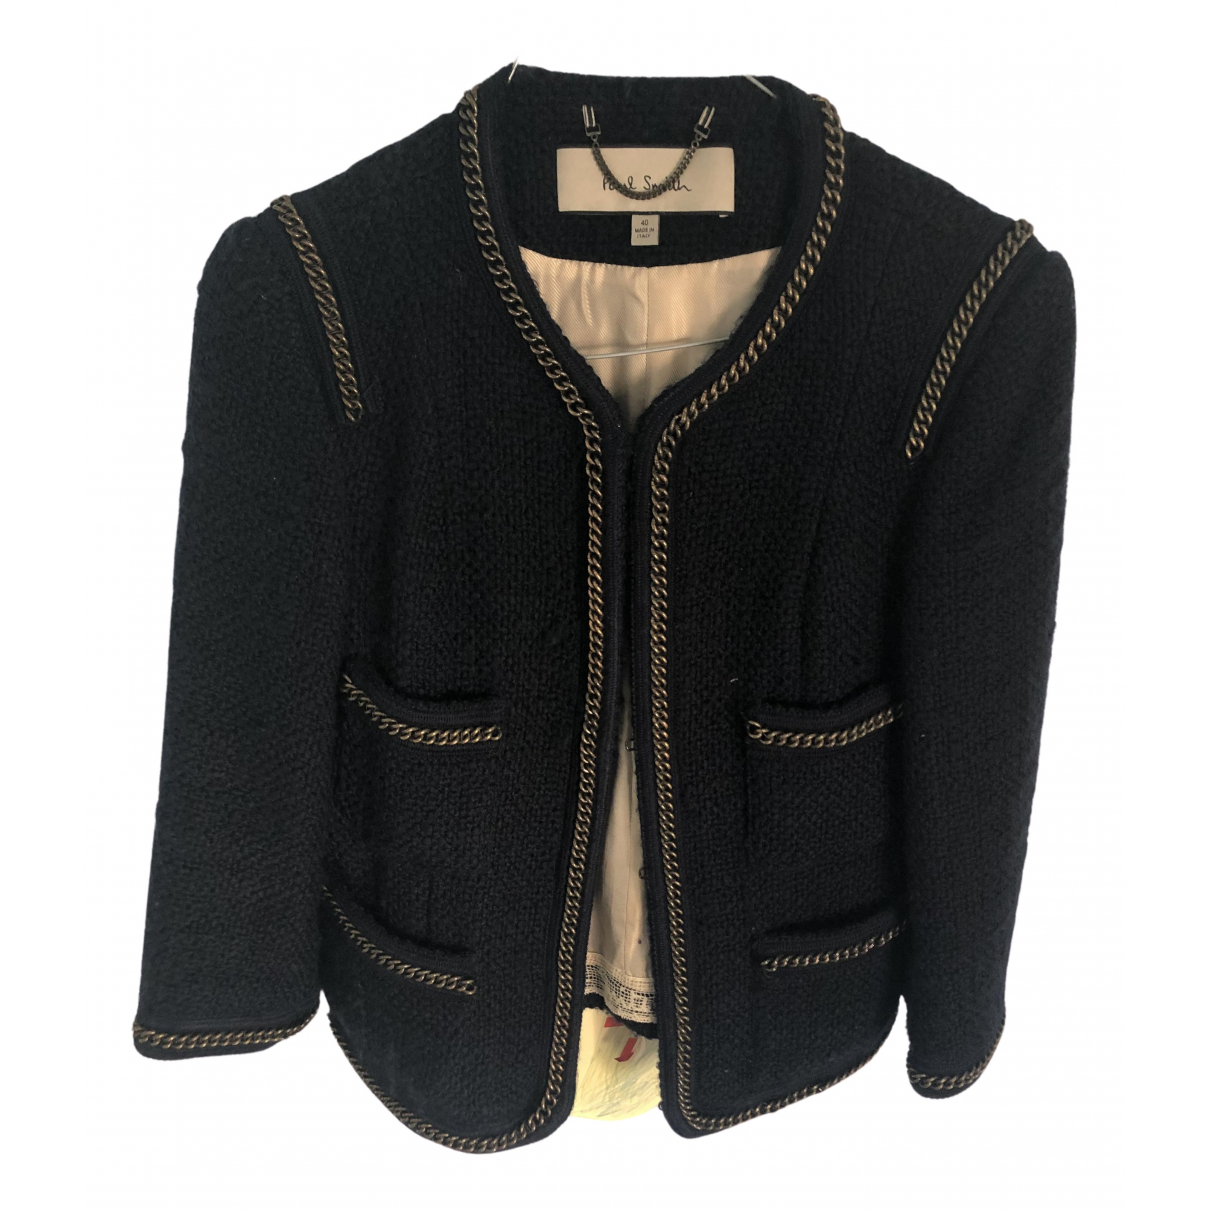 Chaqueta corta de Lana Paul Smith